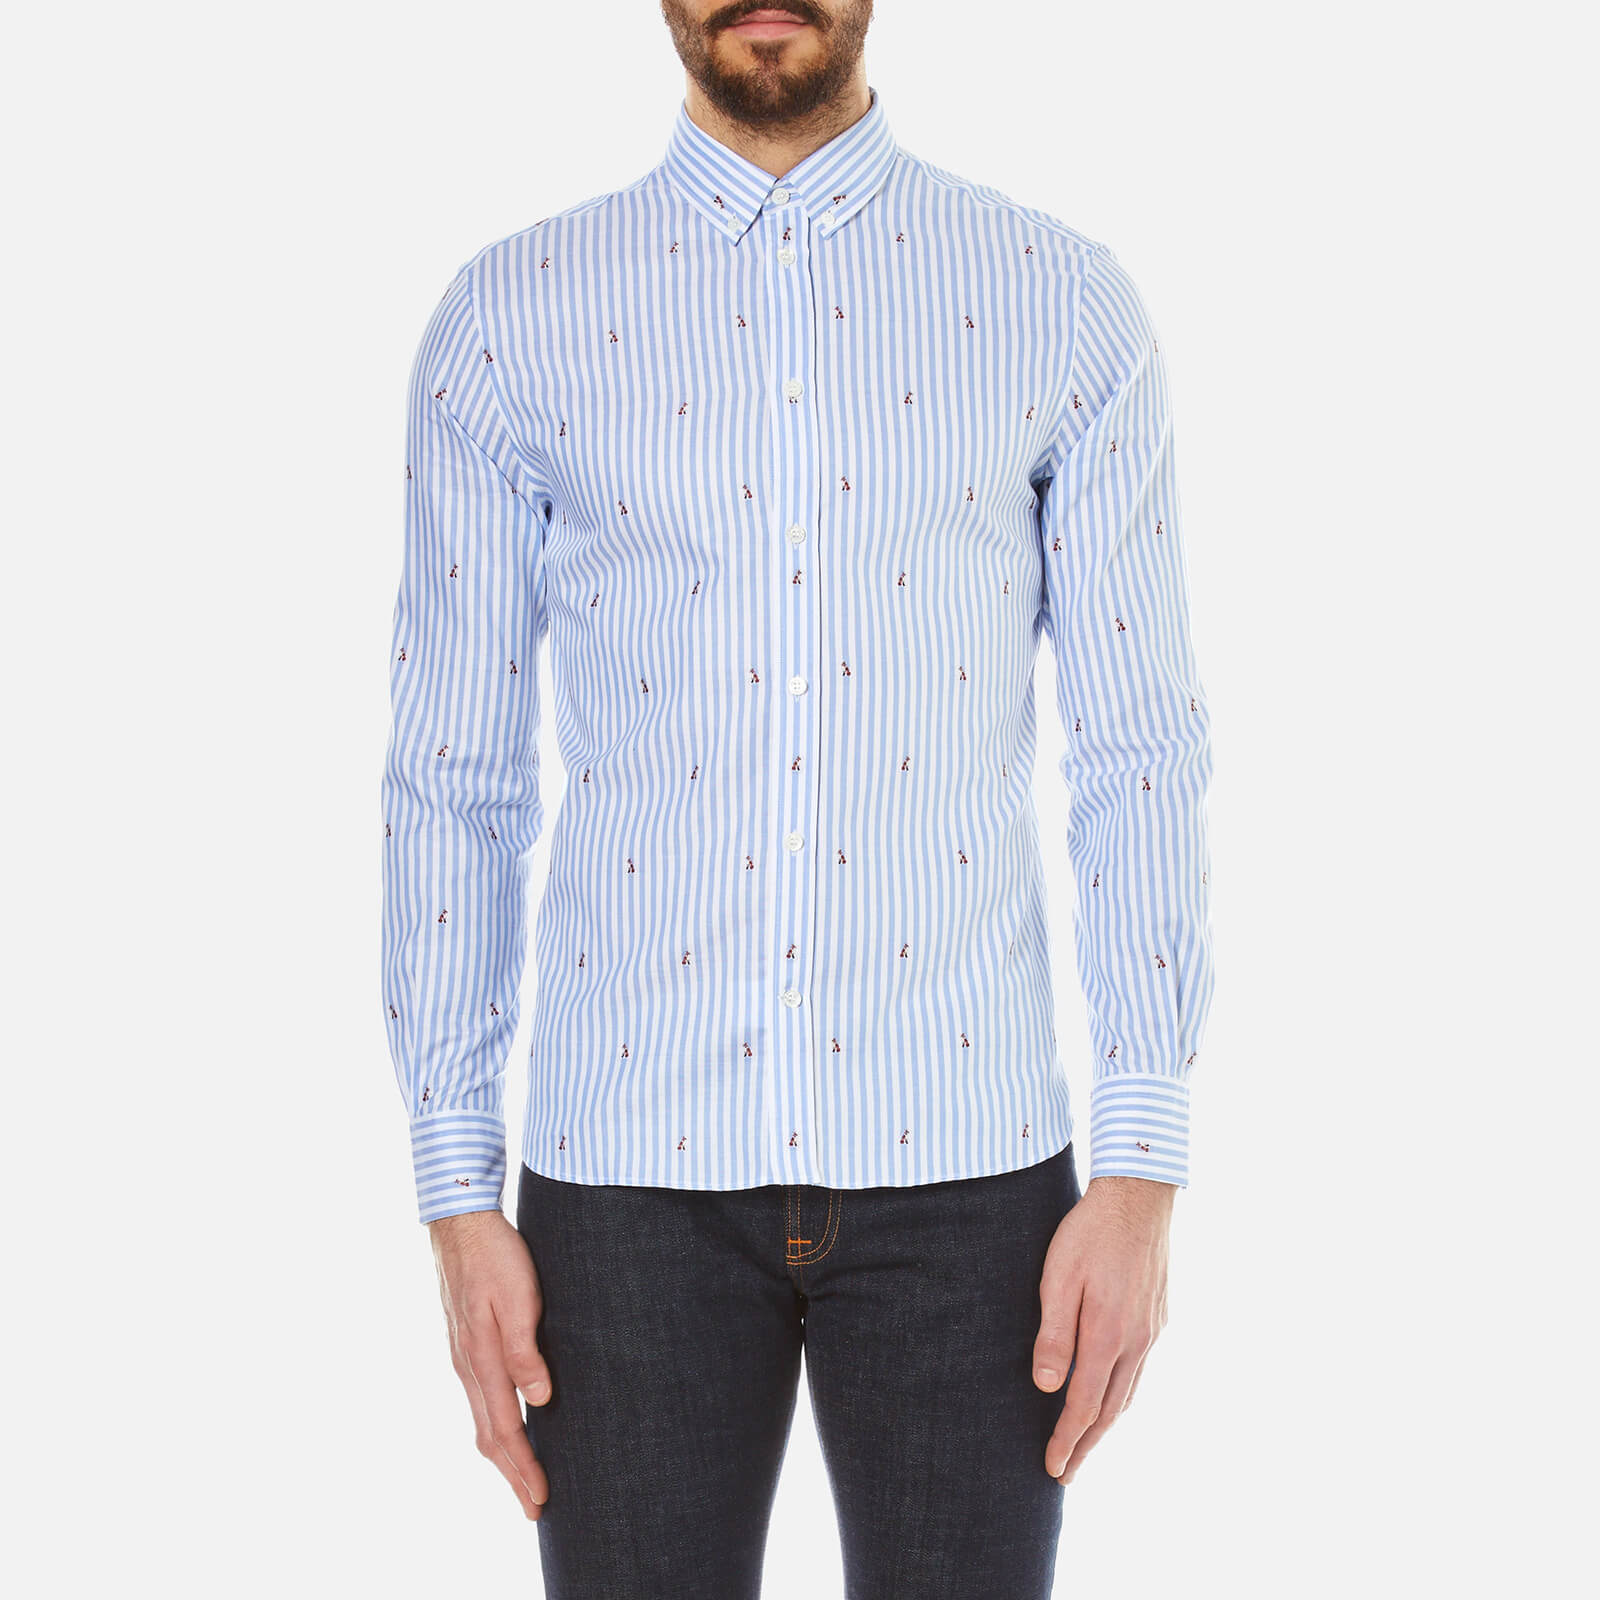 e7a29c7578 Maison Kitsuné Men's Classic Jacquard Fox Long Sleeve Shirt - Light Blue  Stripe - Free UK Delivery over £50